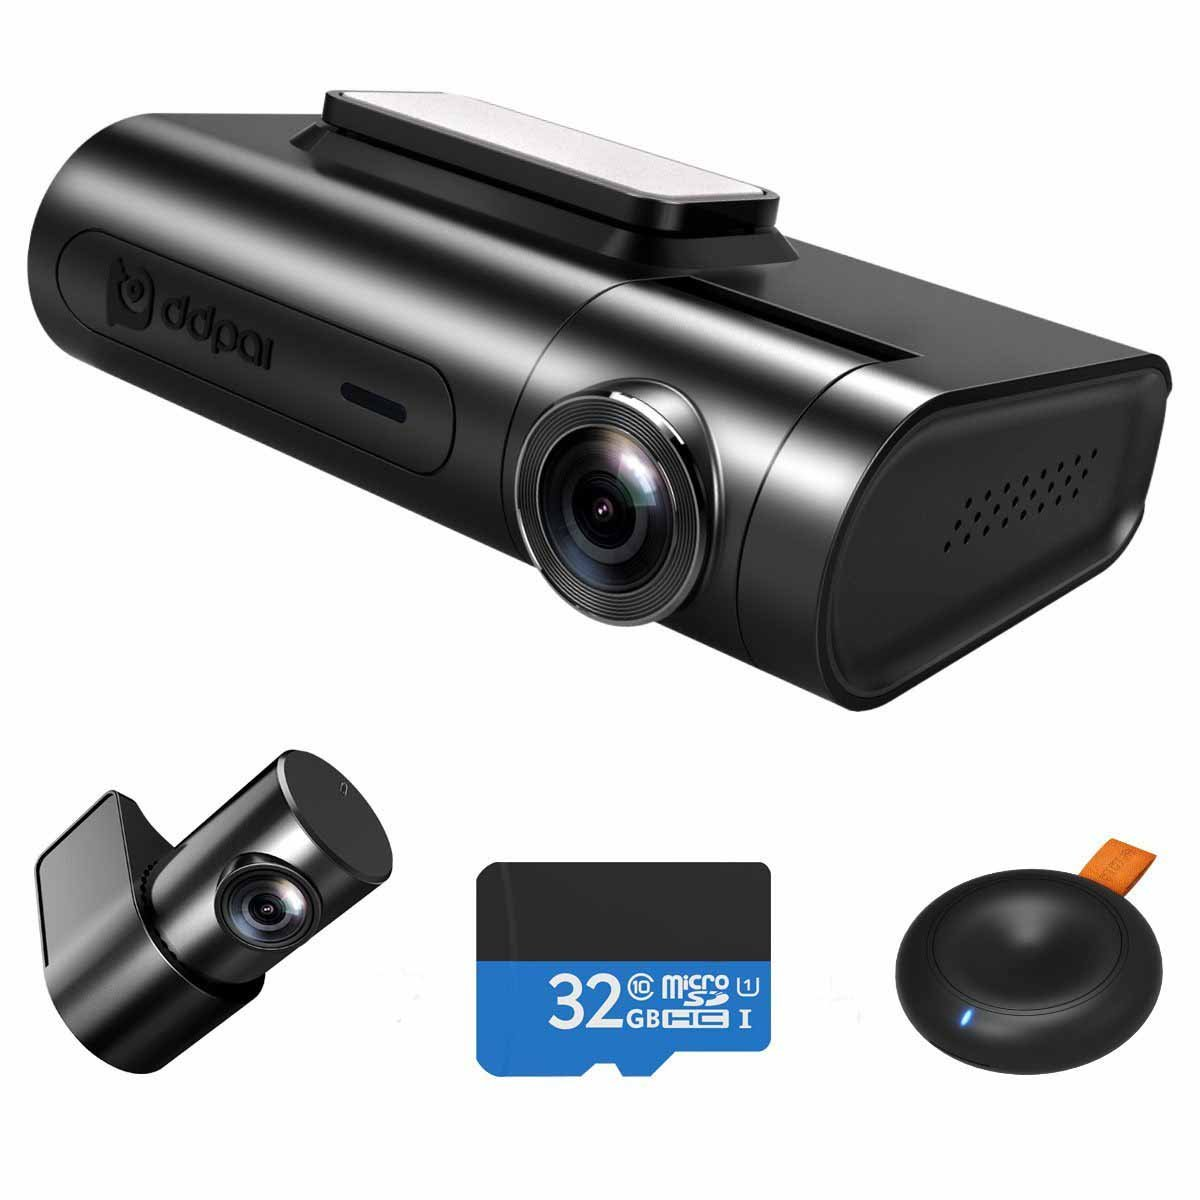 DDPai X2 pro Digital Dual Channel Dash cam , WQHD 2K (25601440) Loop recording, Remote Snapshot, Time lapse Parking mode, Built-in Wi-Fi, G Sensor, GPS, WDR, UP to 128G support